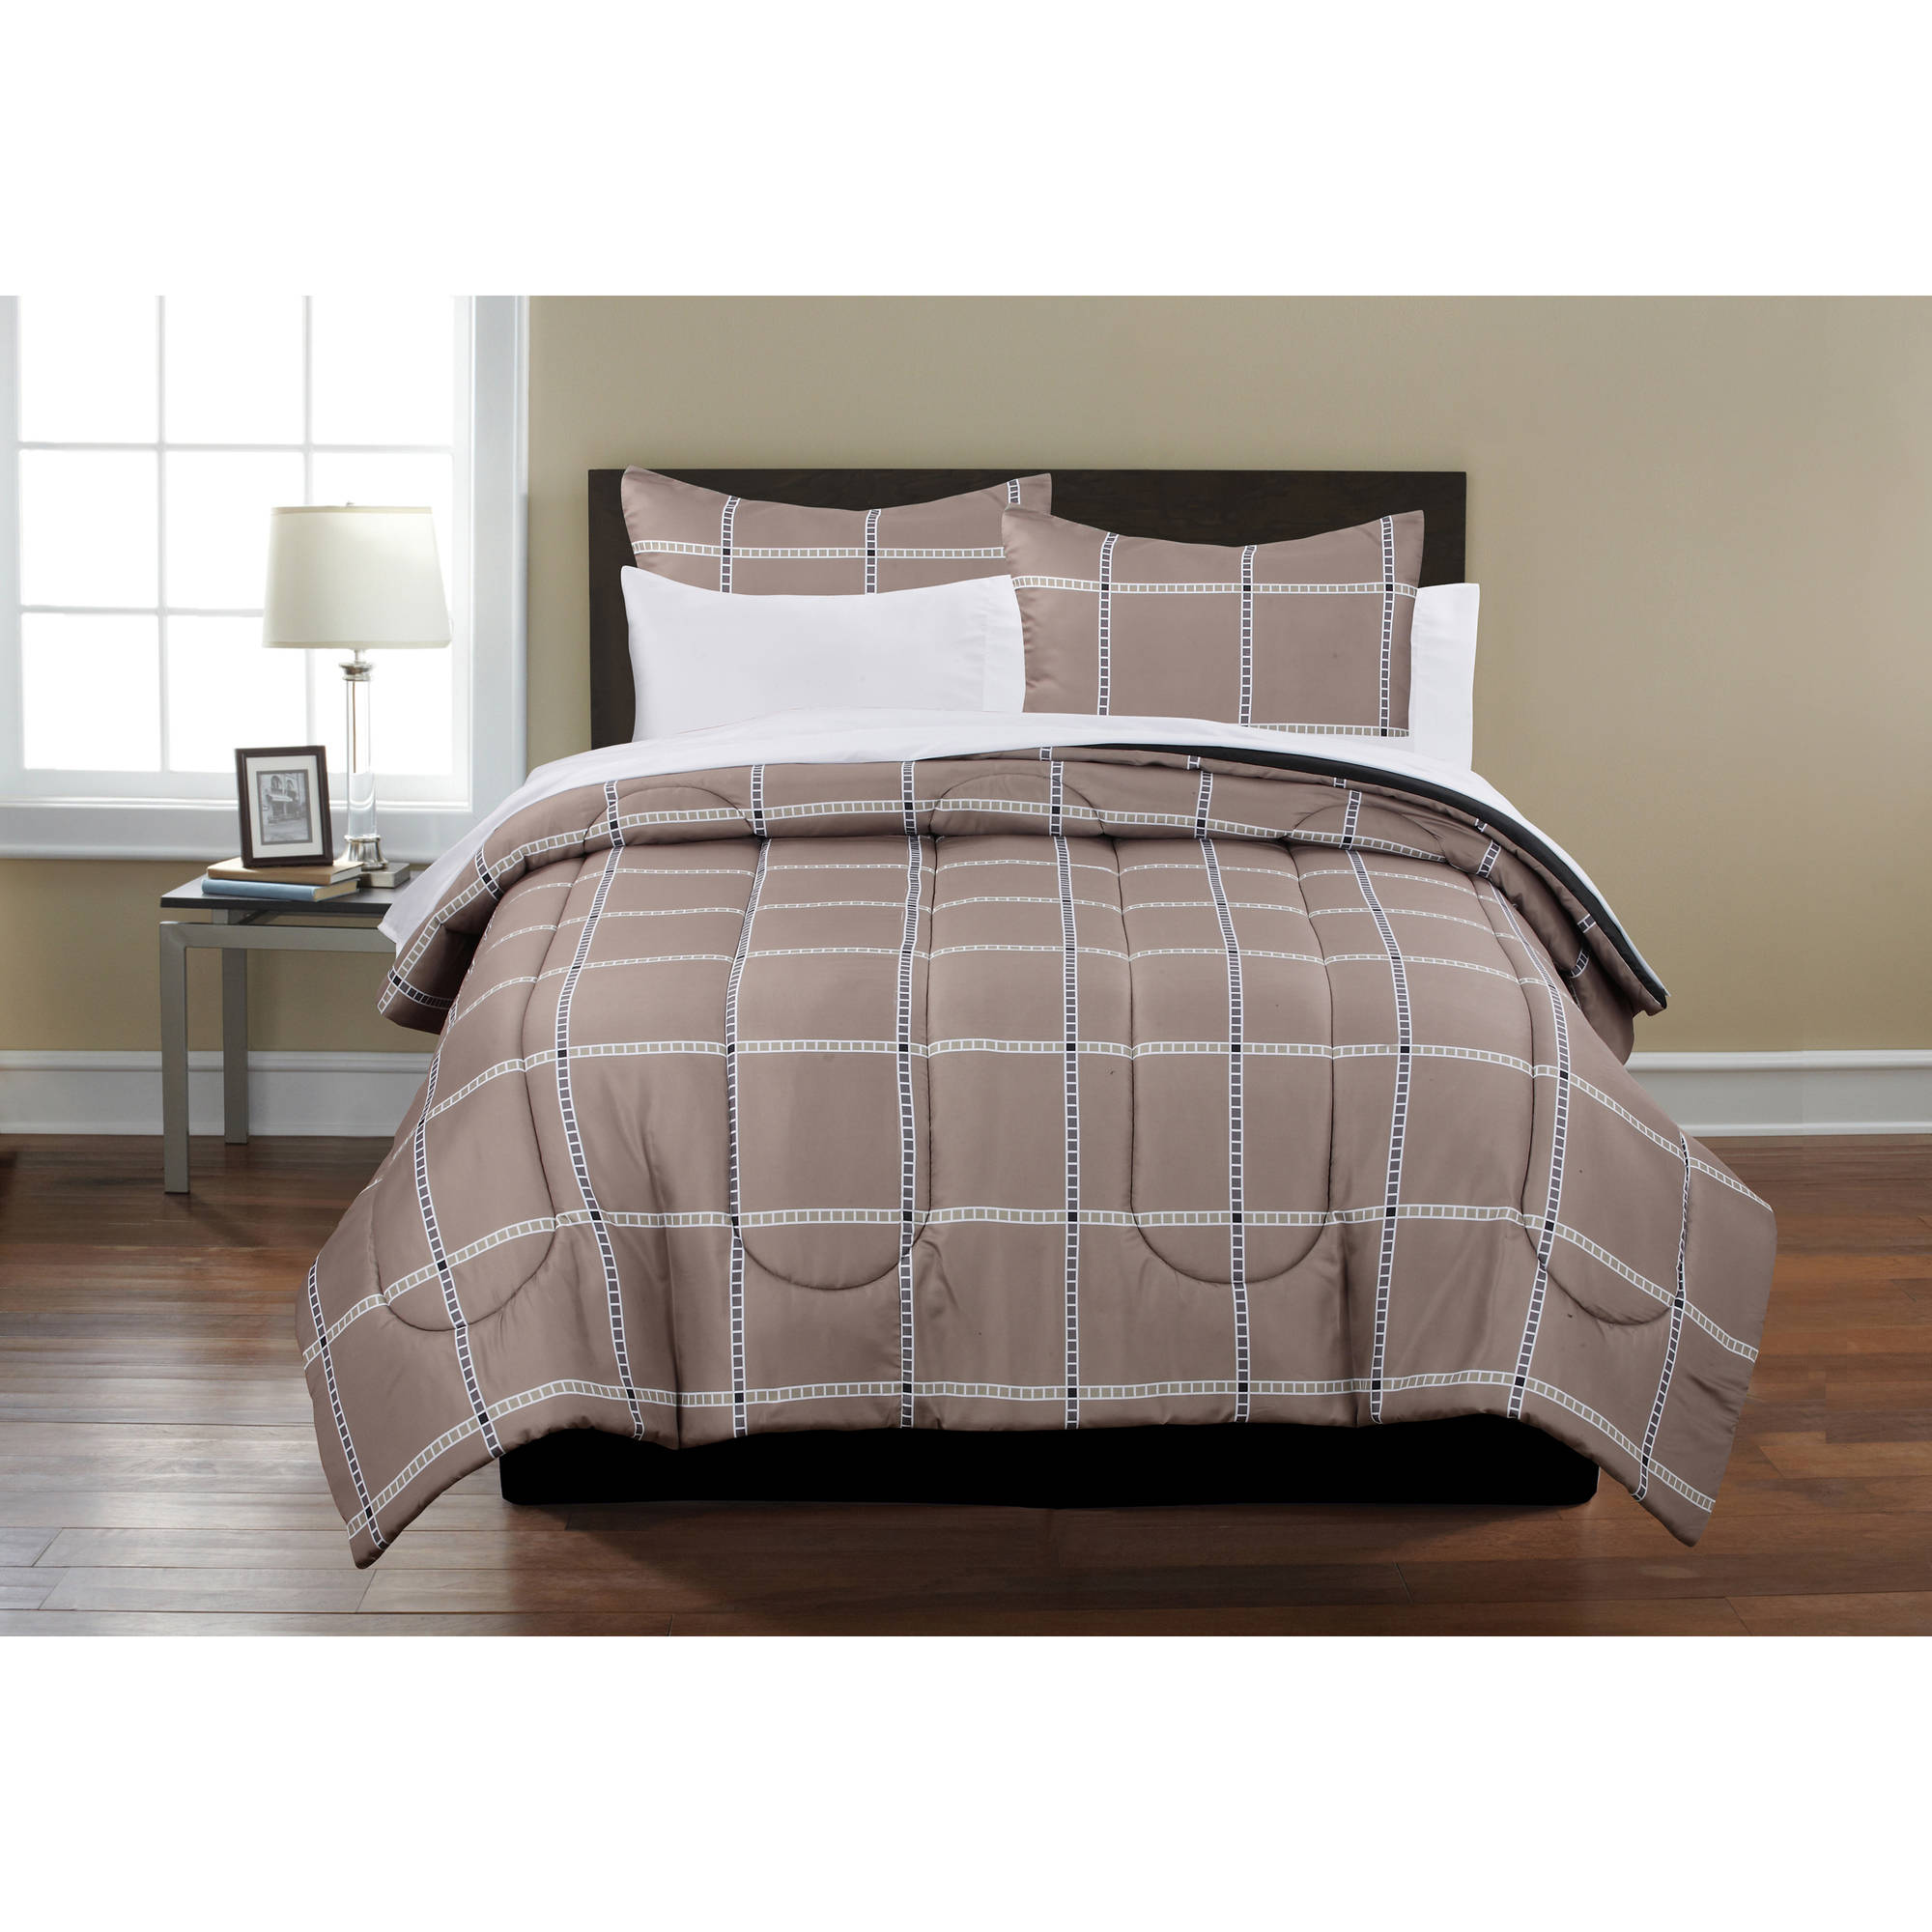 striped comforter check buffalo crib tan white bedding and